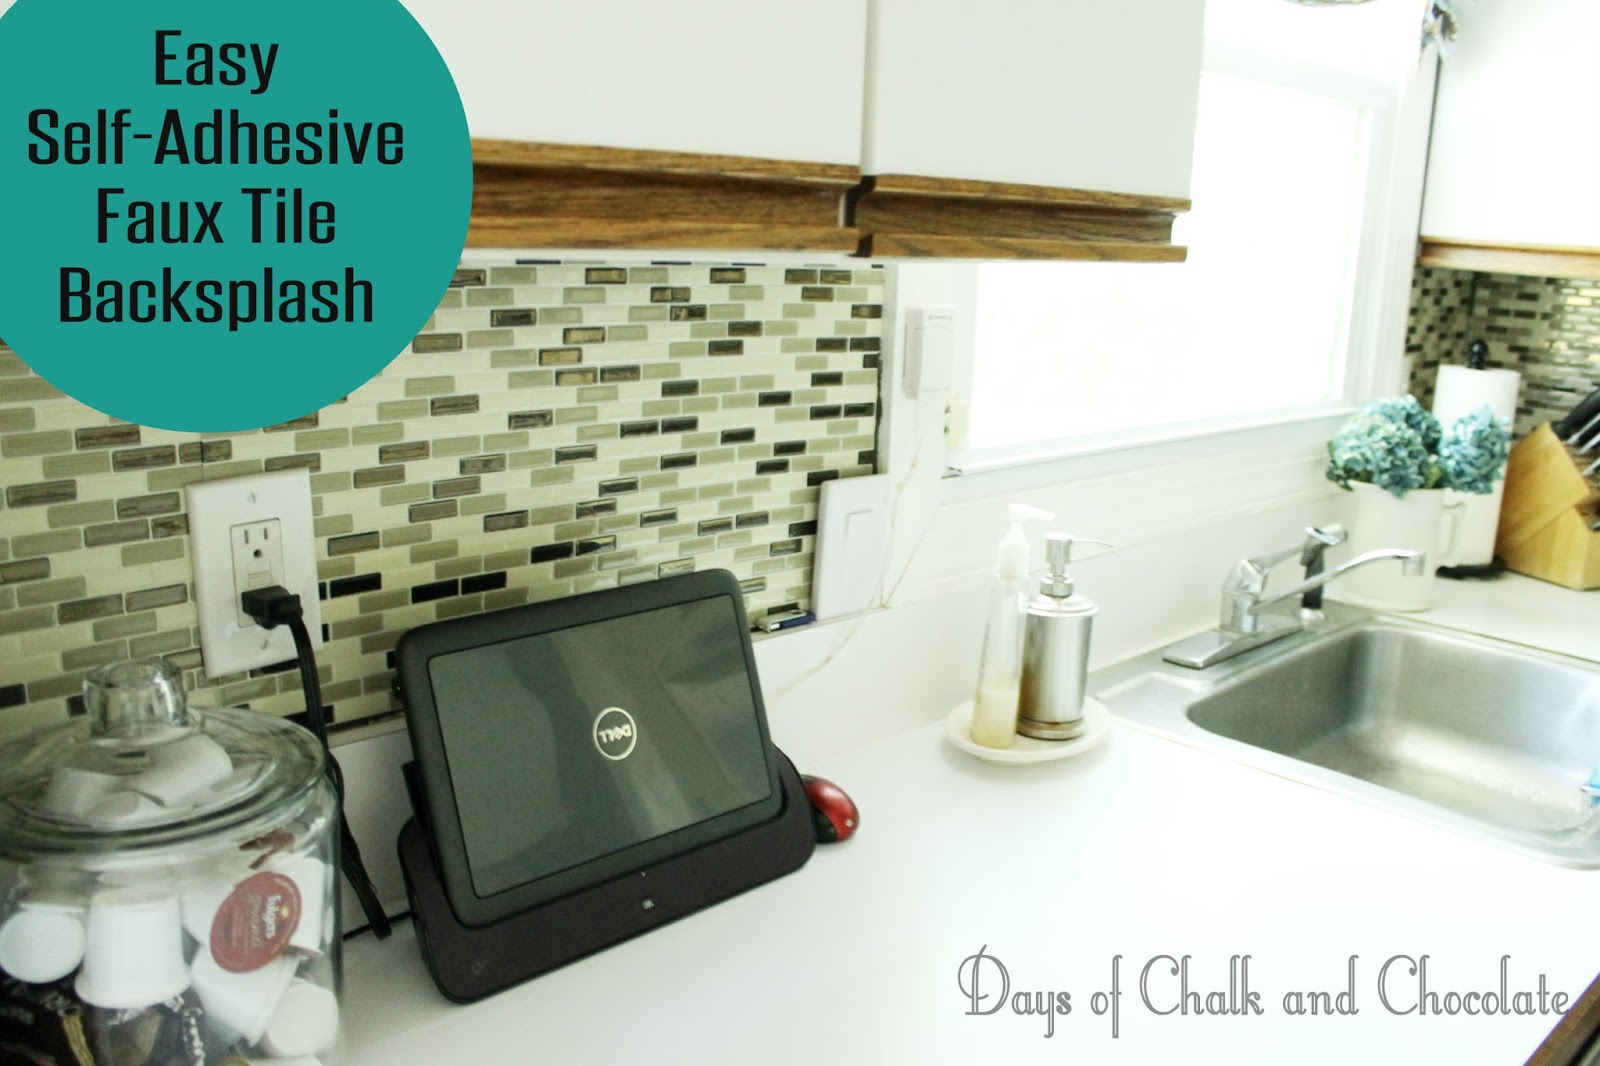 Kitchen Backsplash Easy easy diy self-adhesive faux tile backsplash | days of chalk and